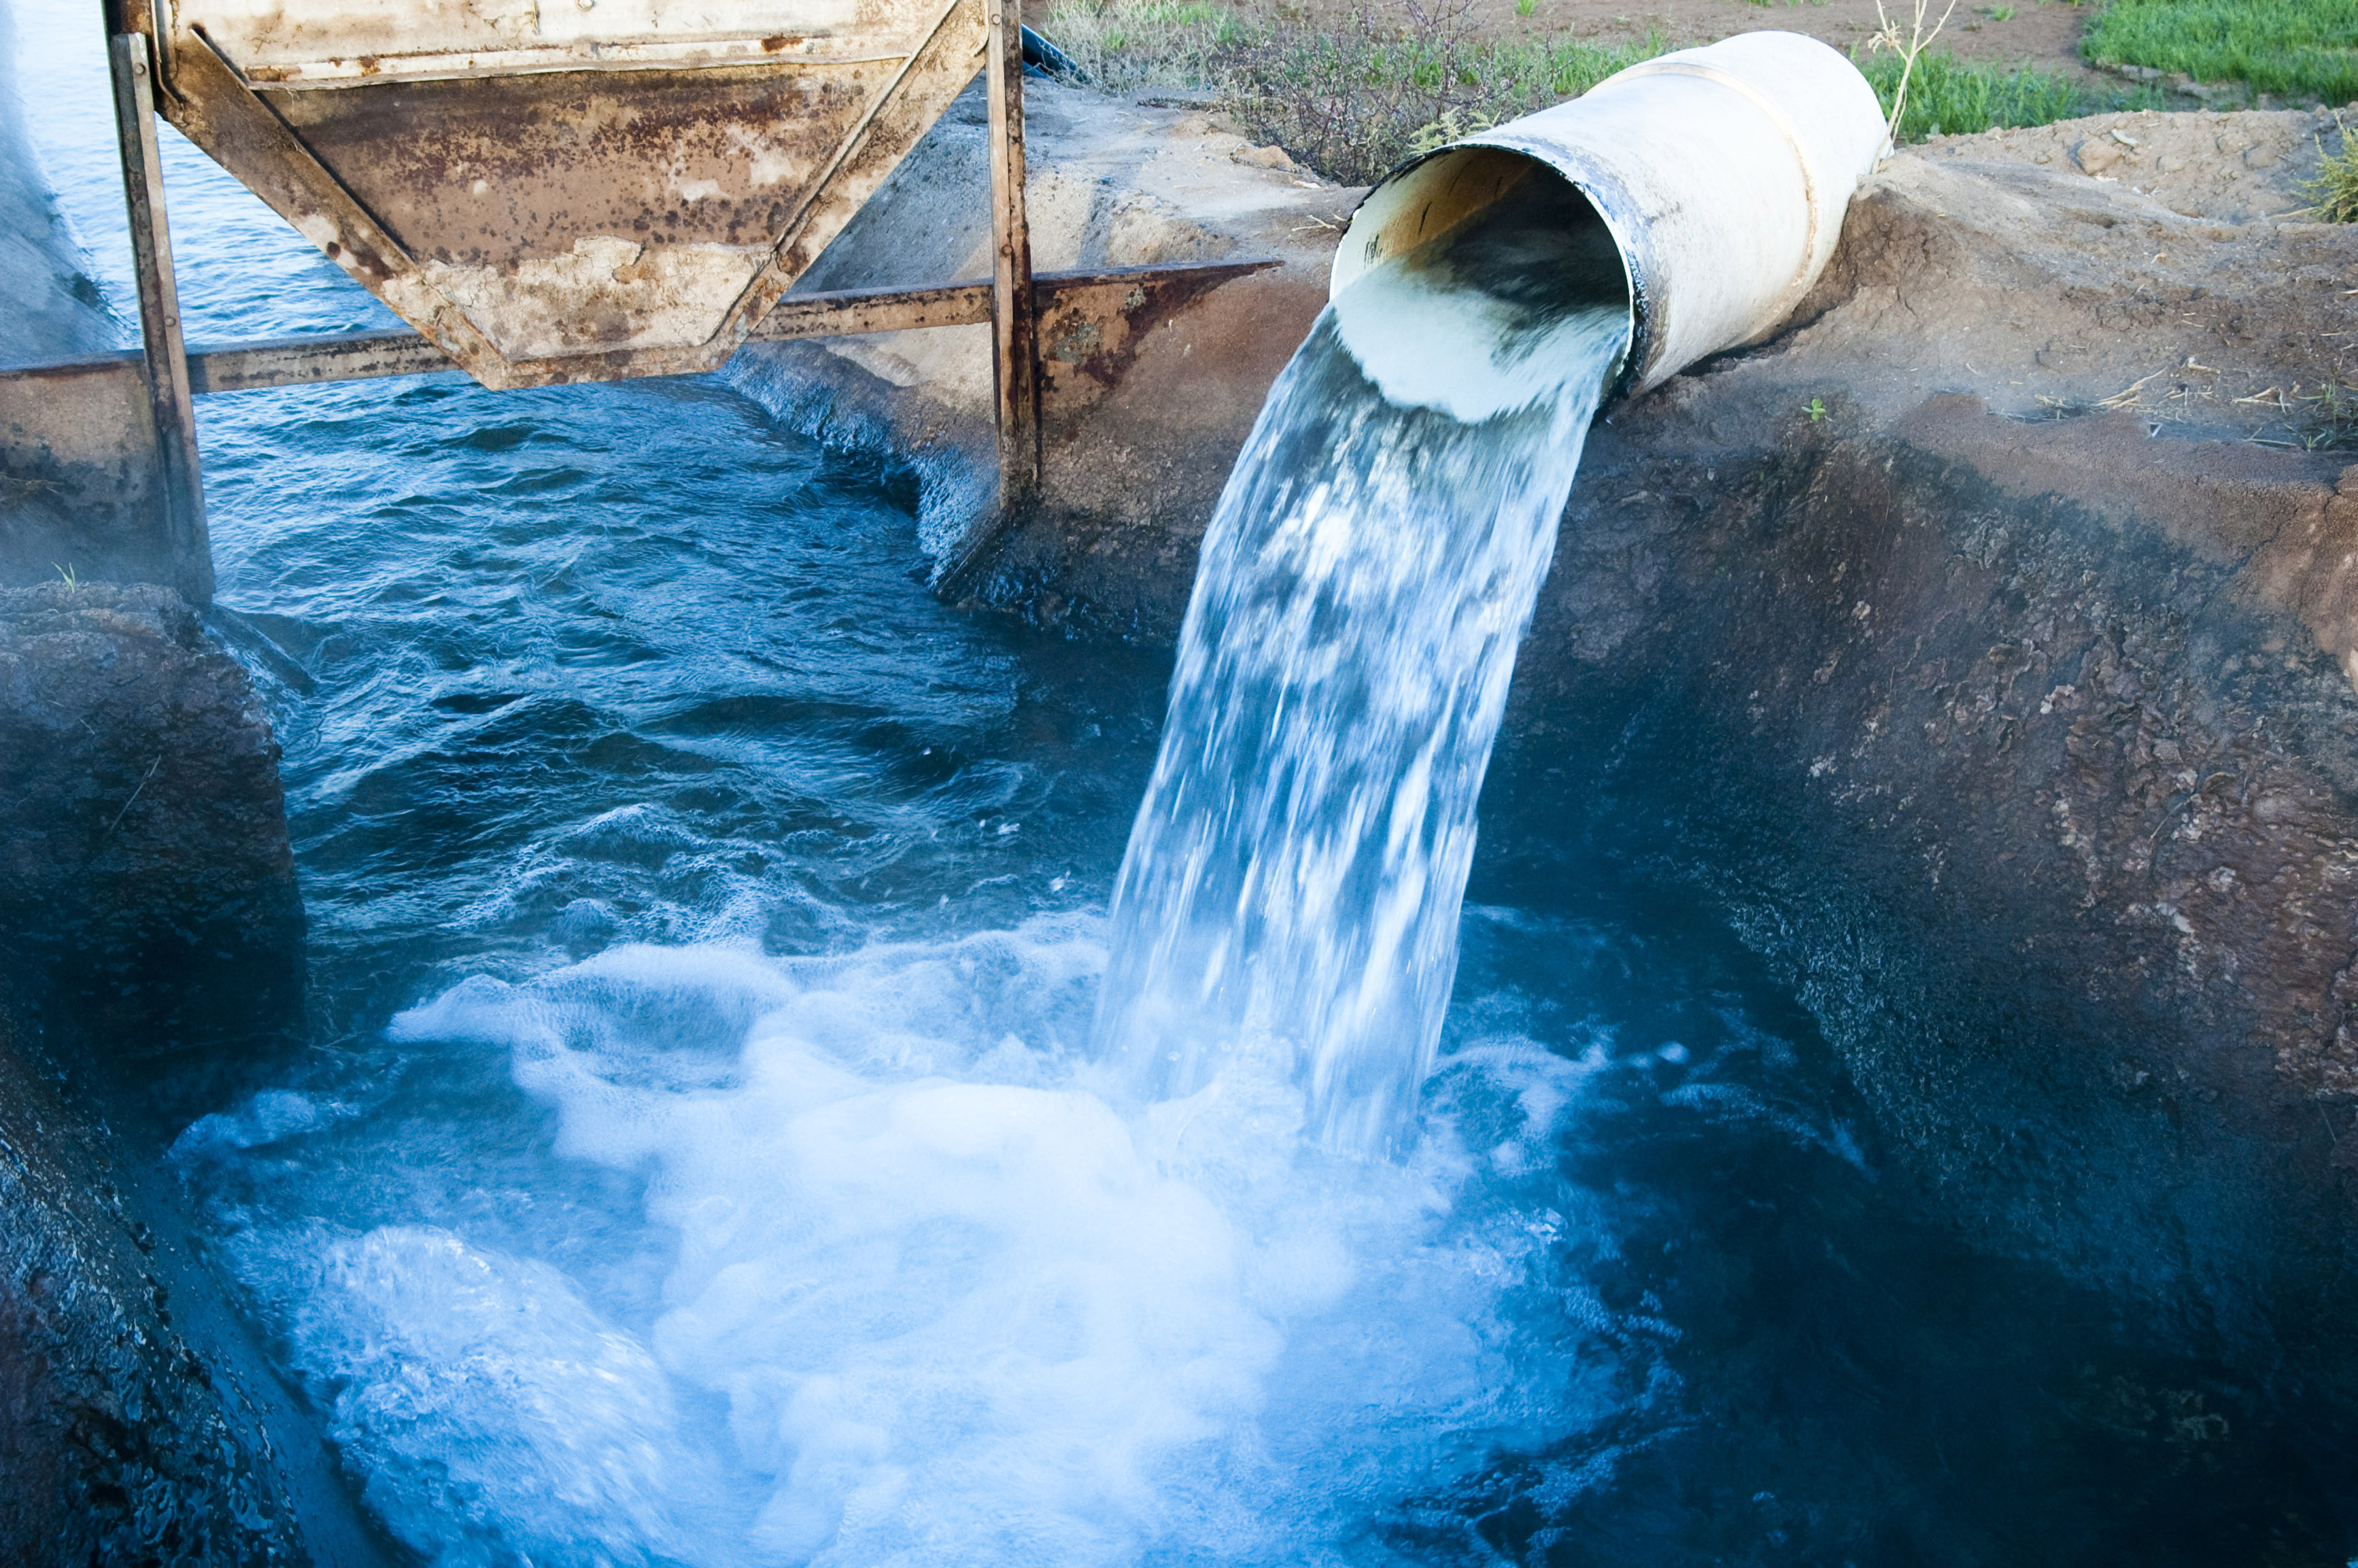 Survey Private Sector Should Play Central Role in Water